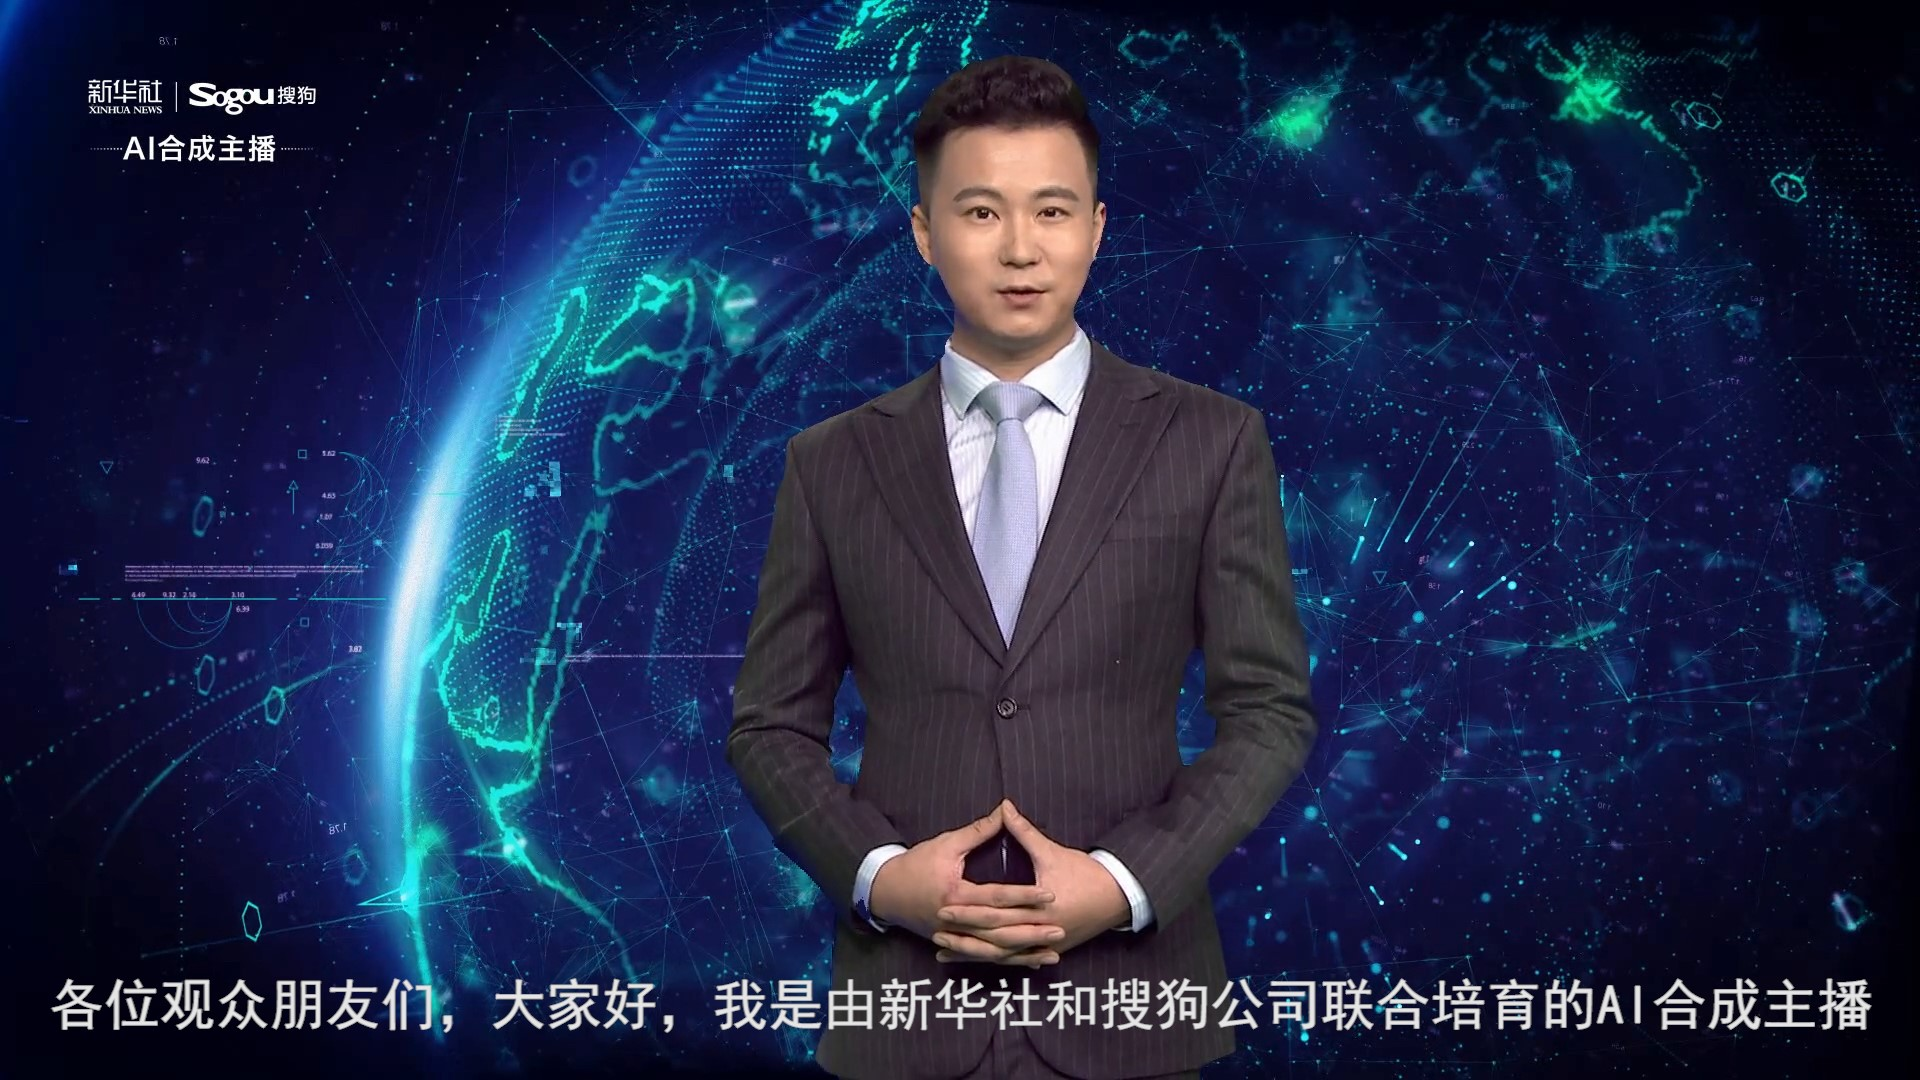 Digital news anchors coming to local TV channels